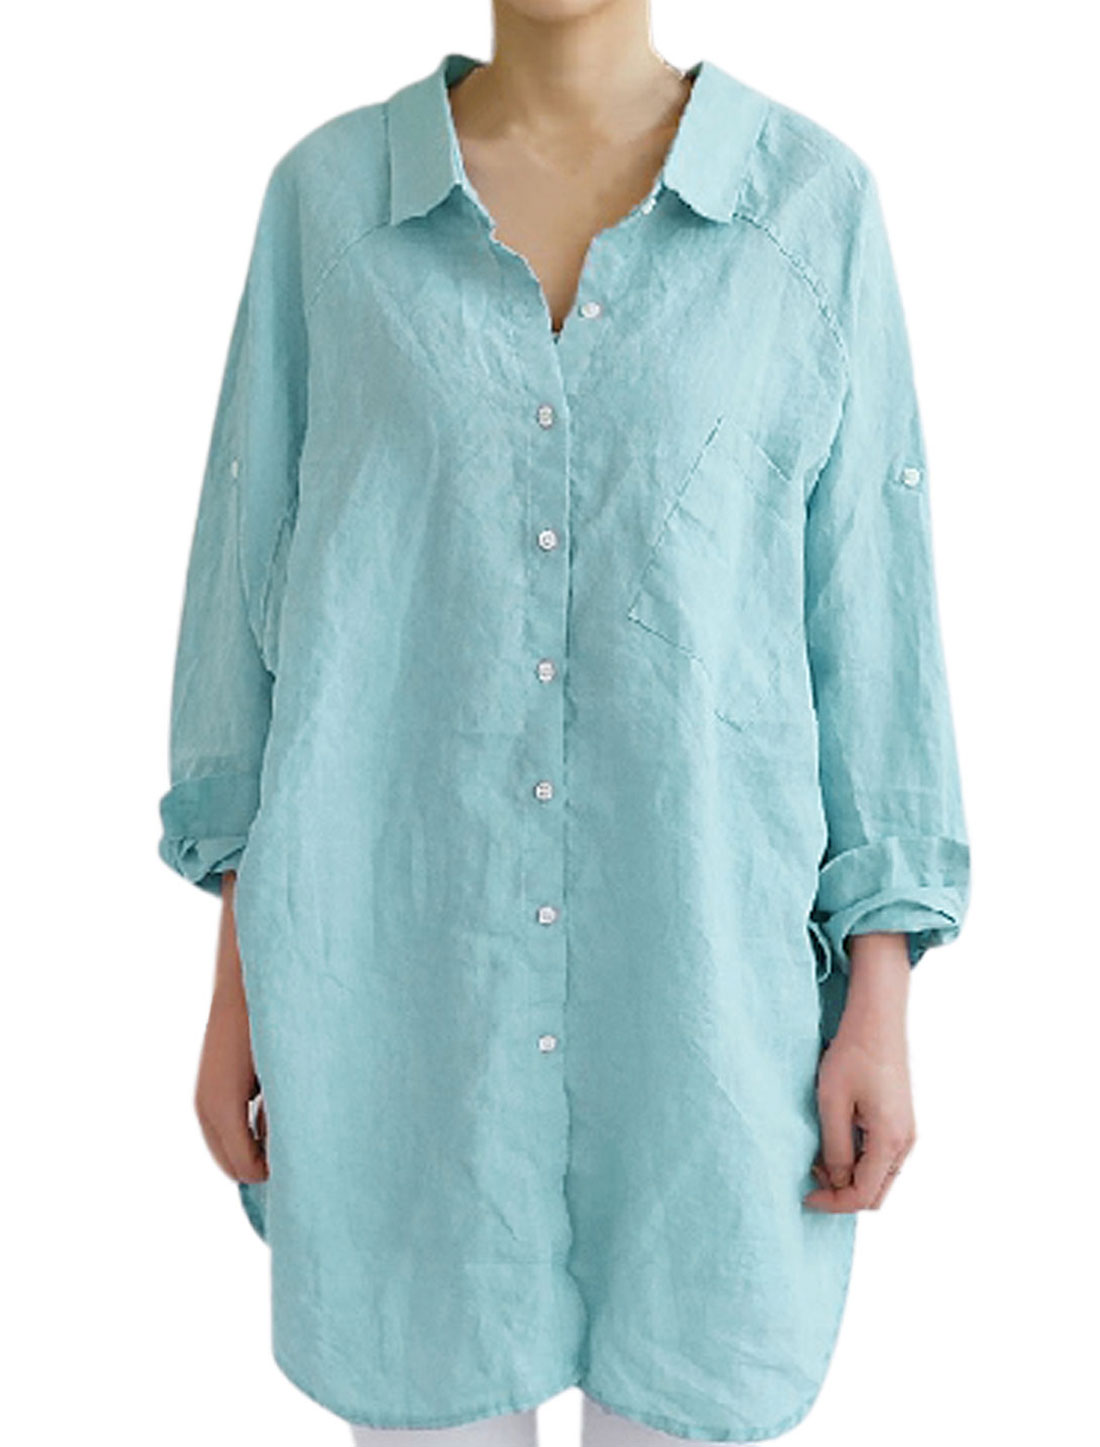 Lady's Slant Chest Pocket Button Closure Back Tunic Blouse Sky Blue S